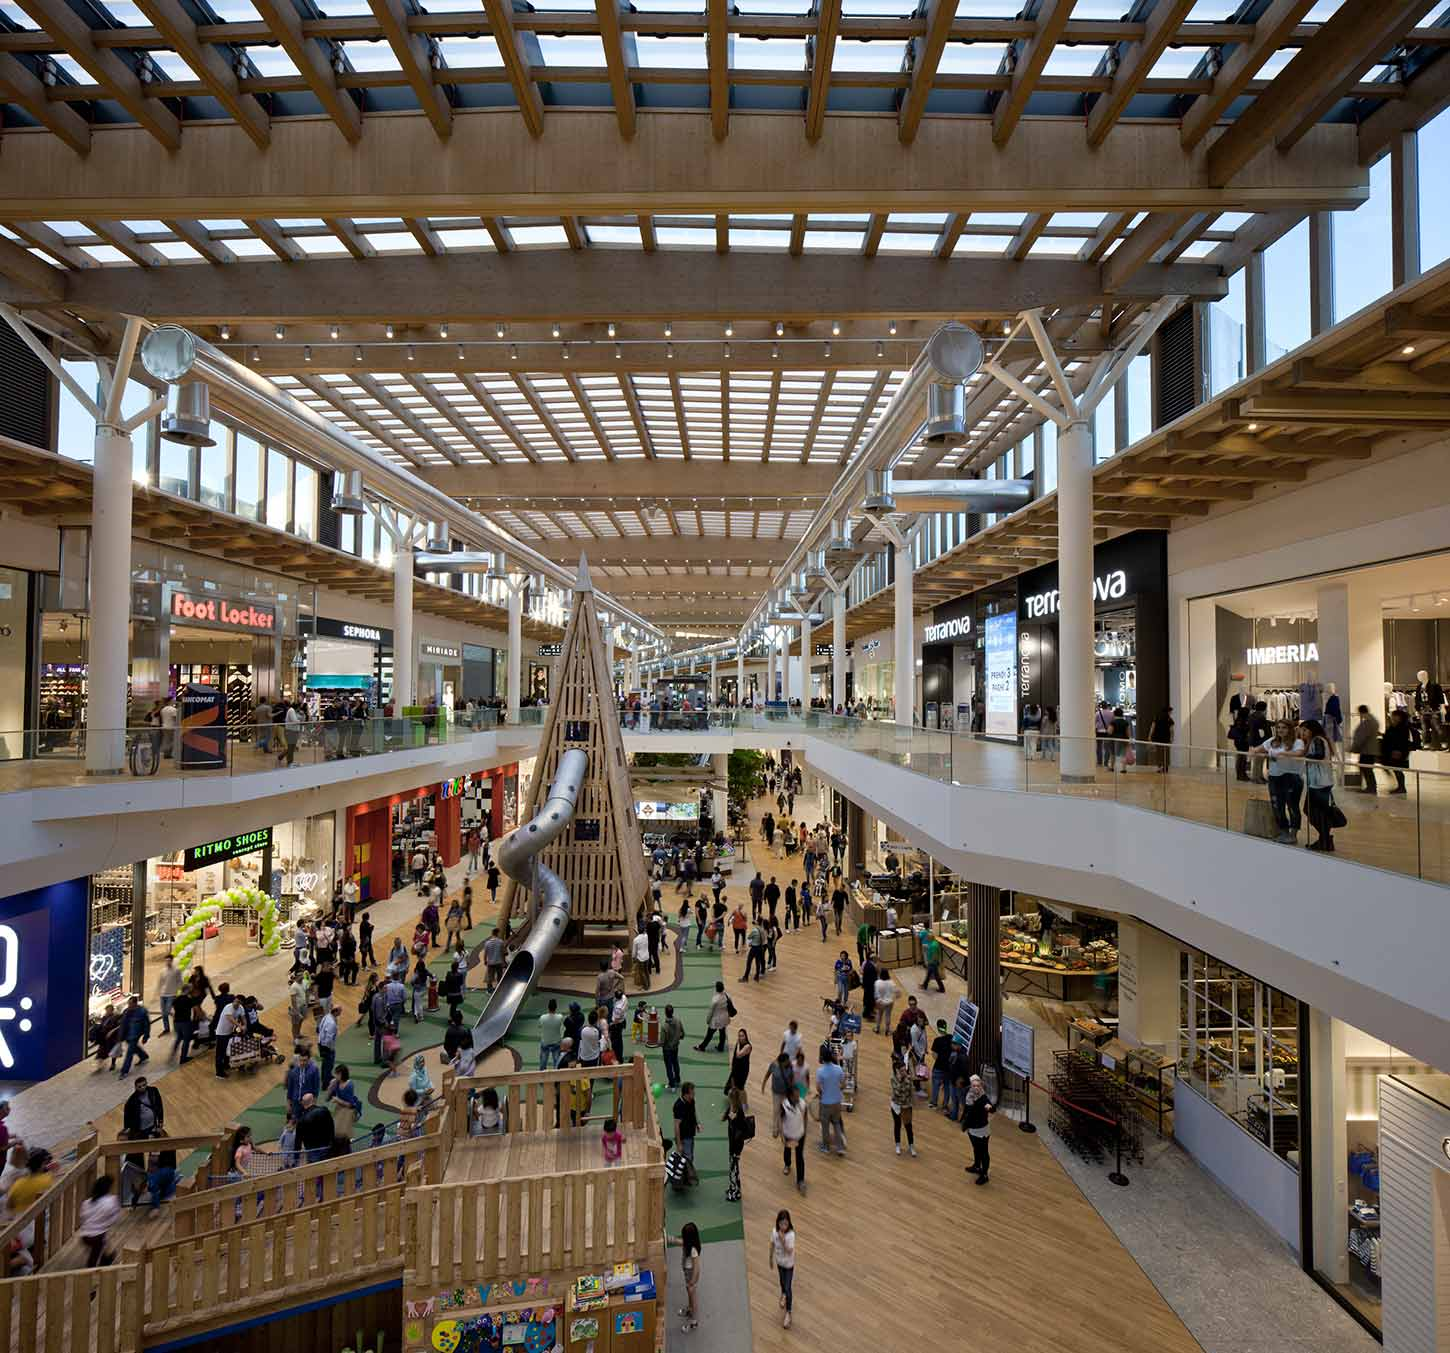 Shopping Centre 'Il Centro' Arese